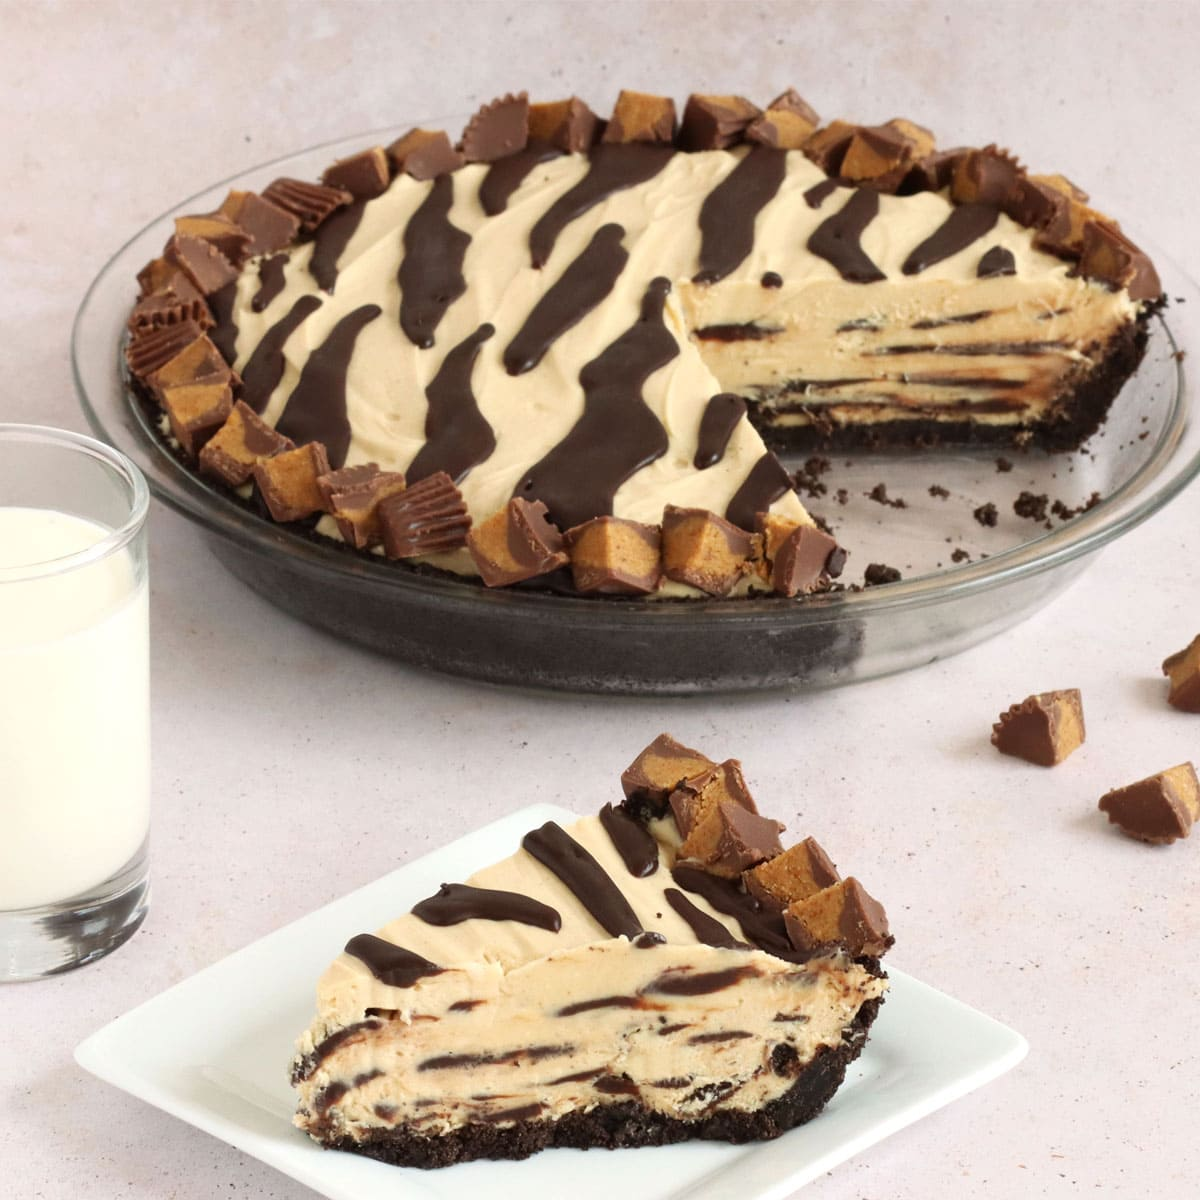 Tiger Pie - no bake peanut butter pie layered and decorated with chocolate ganache and peanut butter cups.